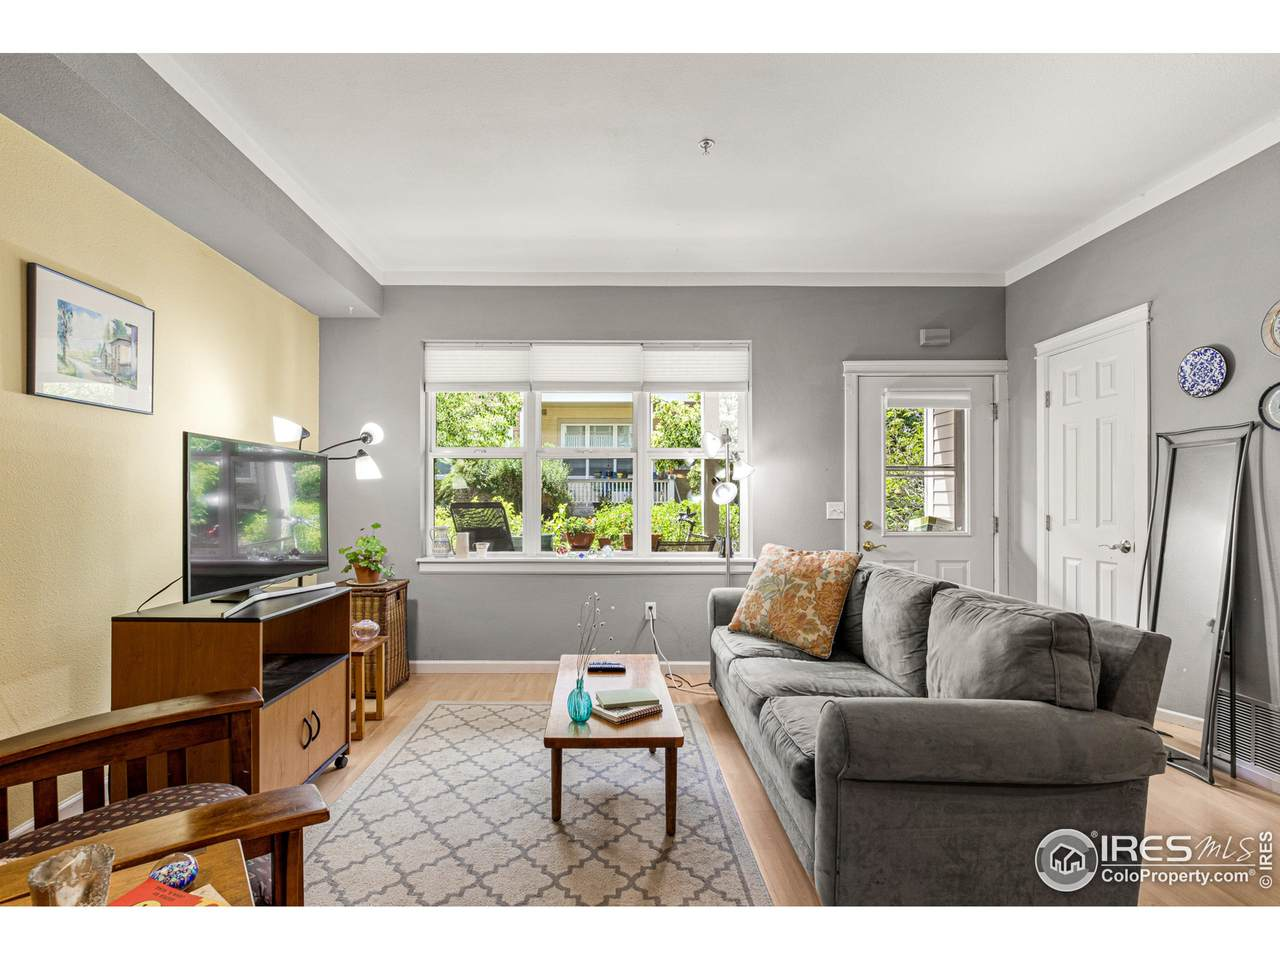 1420 Lee Hill Rd - Photo 1